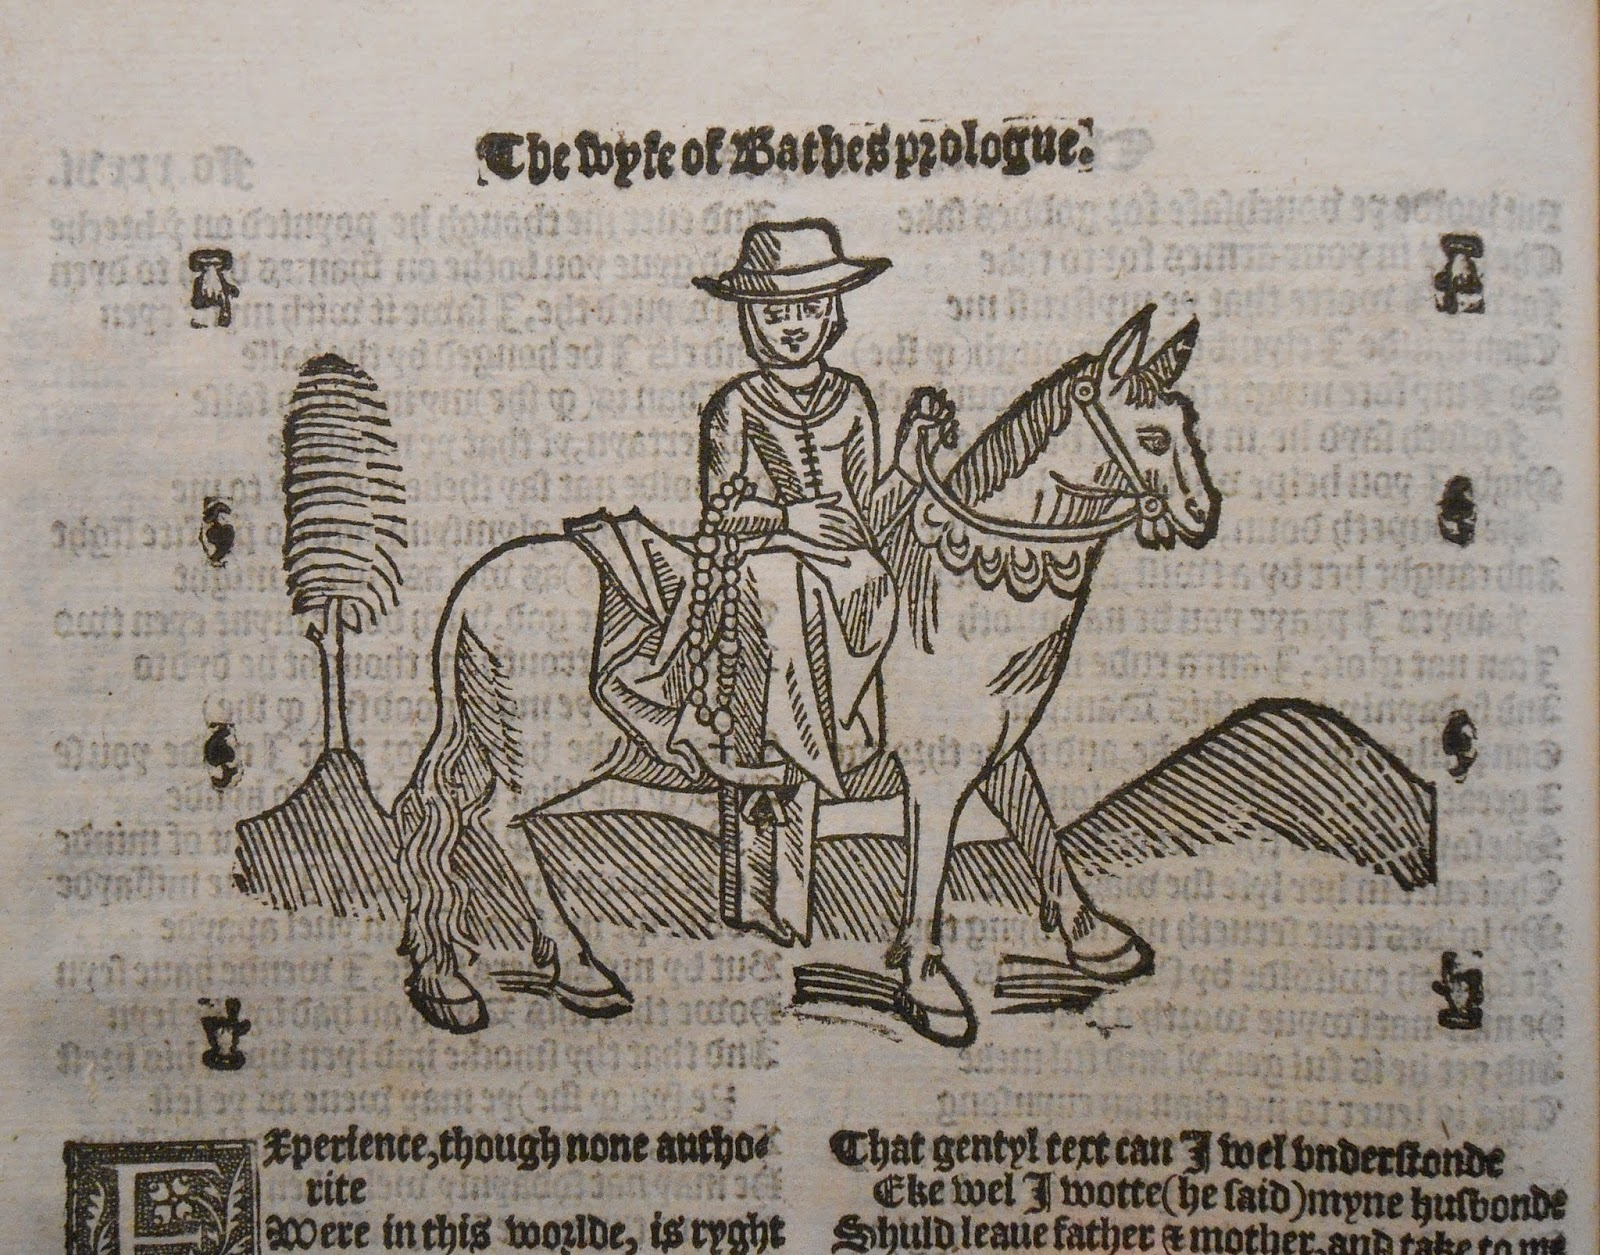 A woodcut of a woman in travel clothes on horseback, holding a rosary.